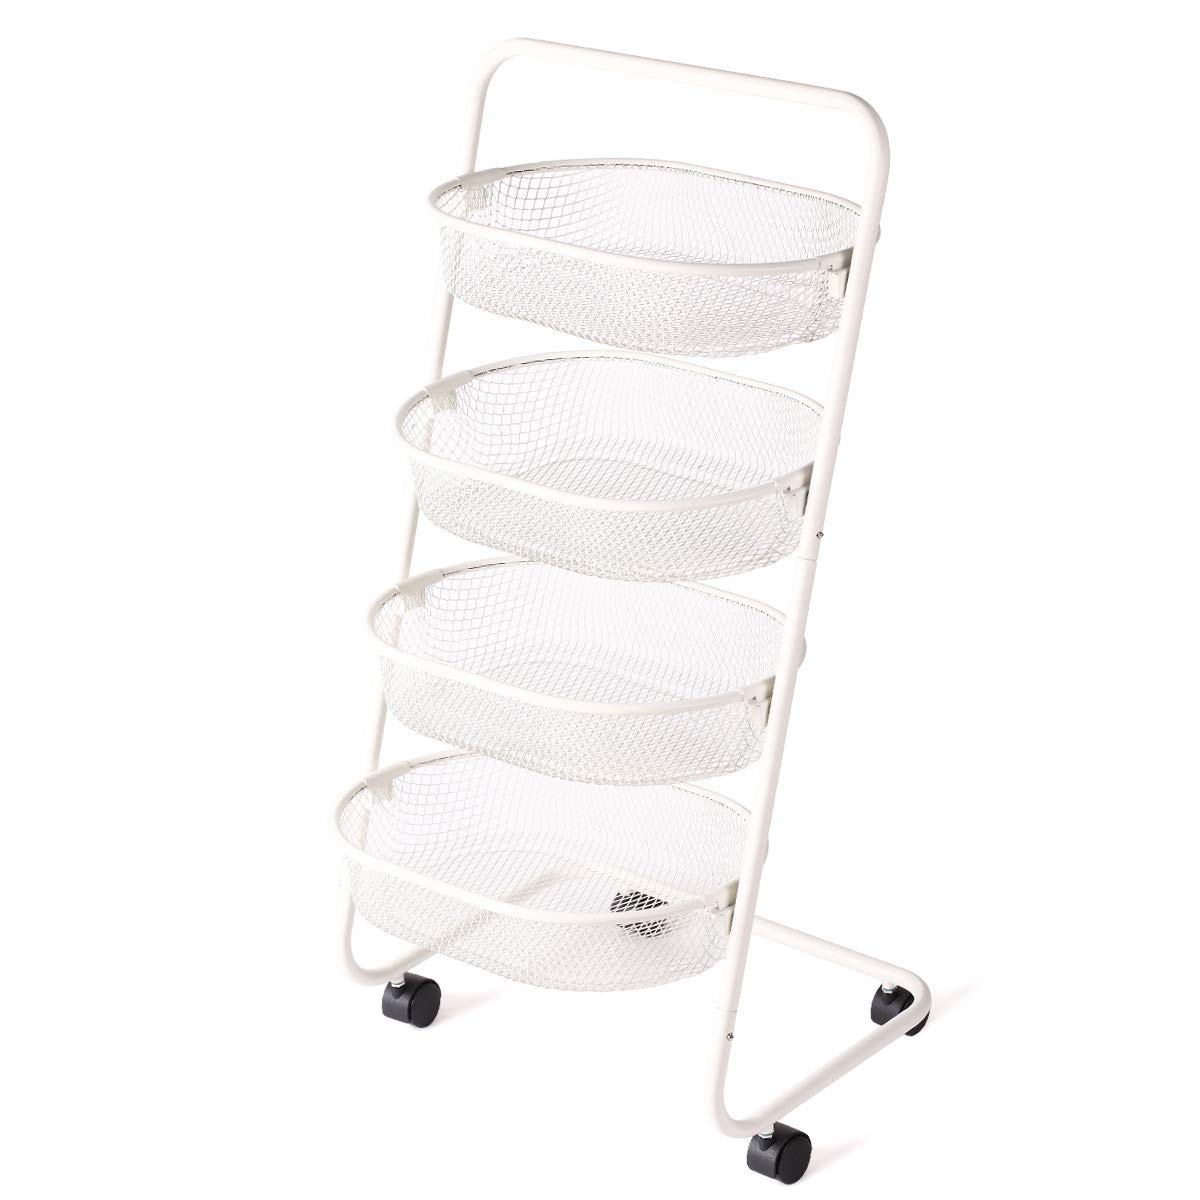 Buruis 4 Tier Rolling Basket, Mesh Wire Multi-function Storage Cart Shelves with Wheels for Home Kitchen Pantries, Detachable Metal Basket Rack for Food Fruit Vegetable Snacks, Easy Assembly White